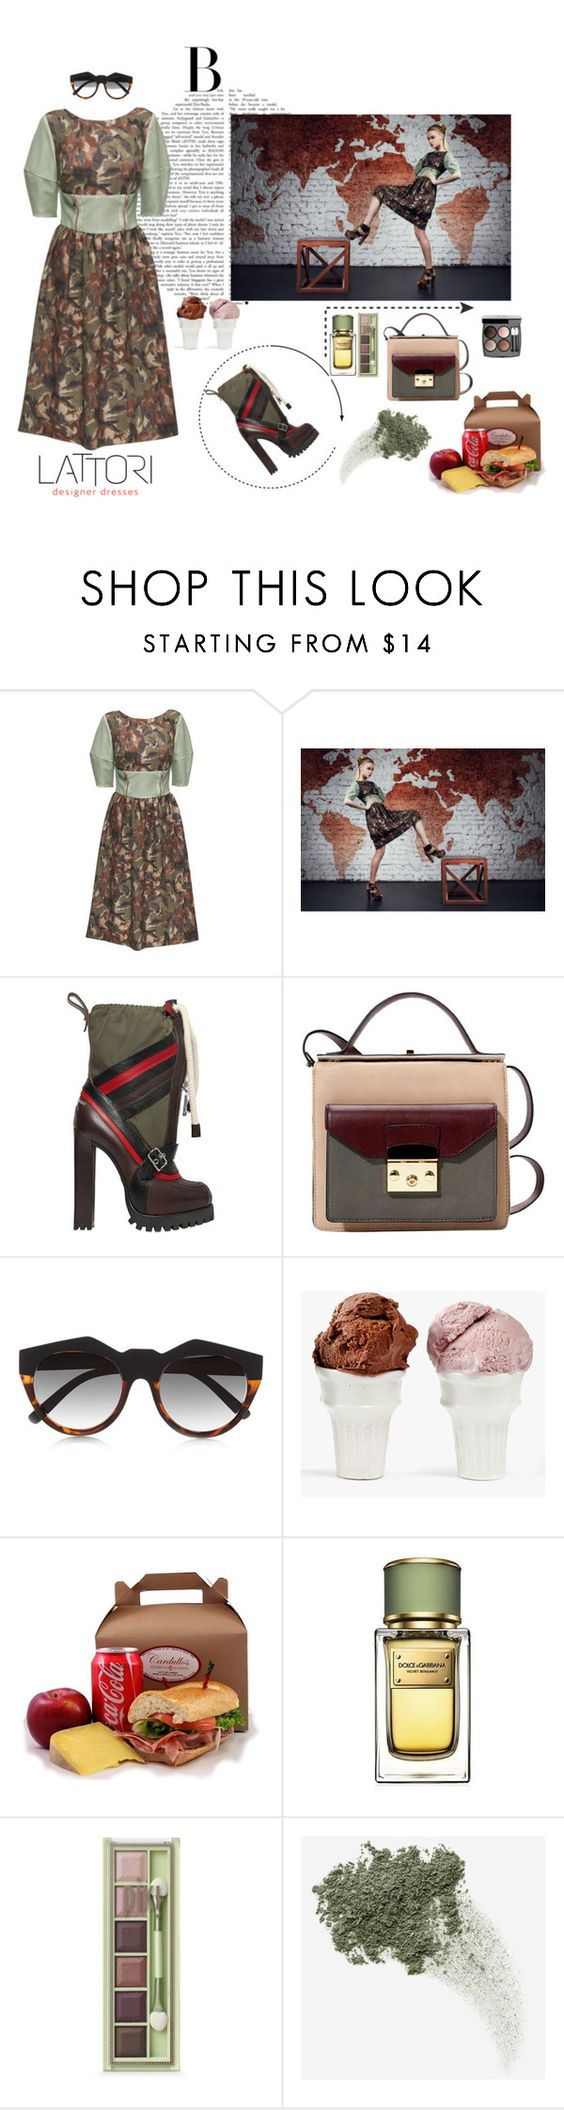 """""""Floral Midi Dress with Perforated Faux Leather"""" by lattori ❤ liked on Polyvore featuring Lattori, Dsquared2, Le Specs, Chanel, Sin, Dolce&Gabbana, Pixi, Bare Escentuals, dress and dresses"""